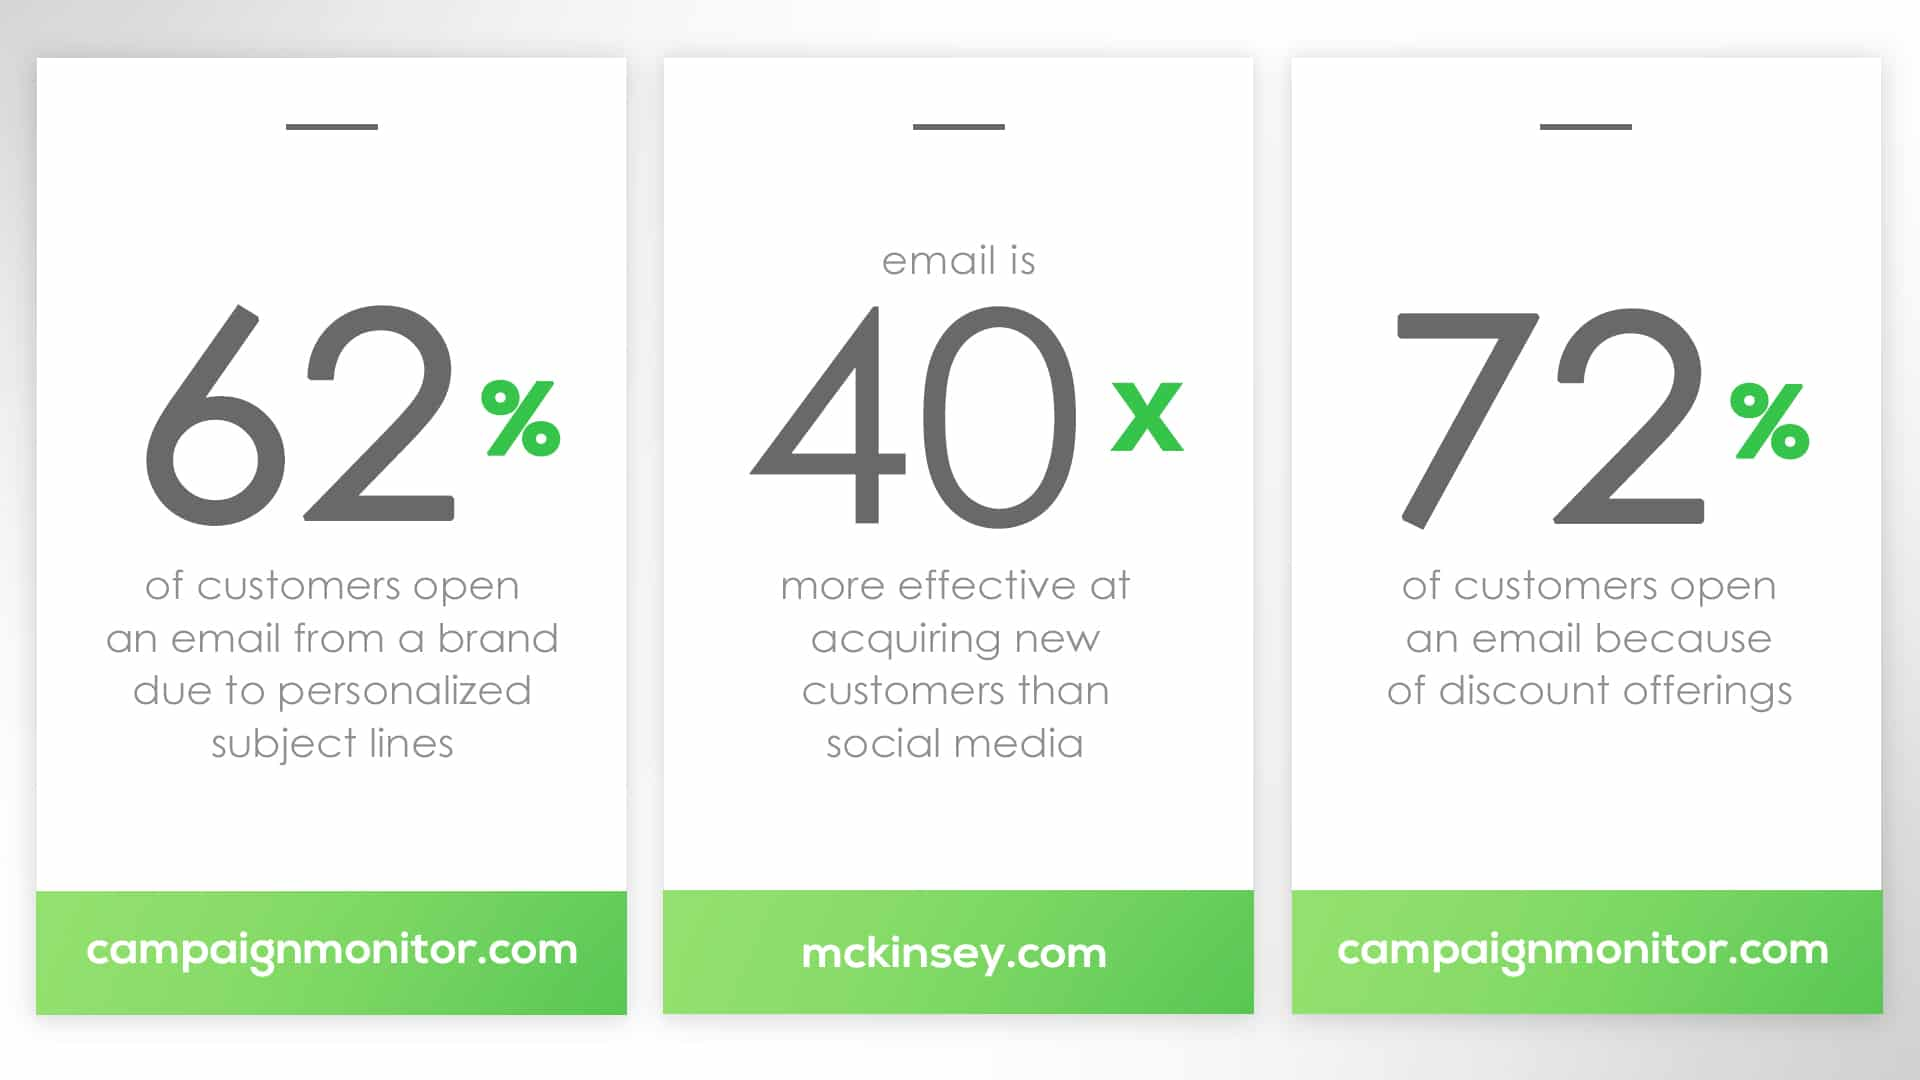 Statistics about email marketing